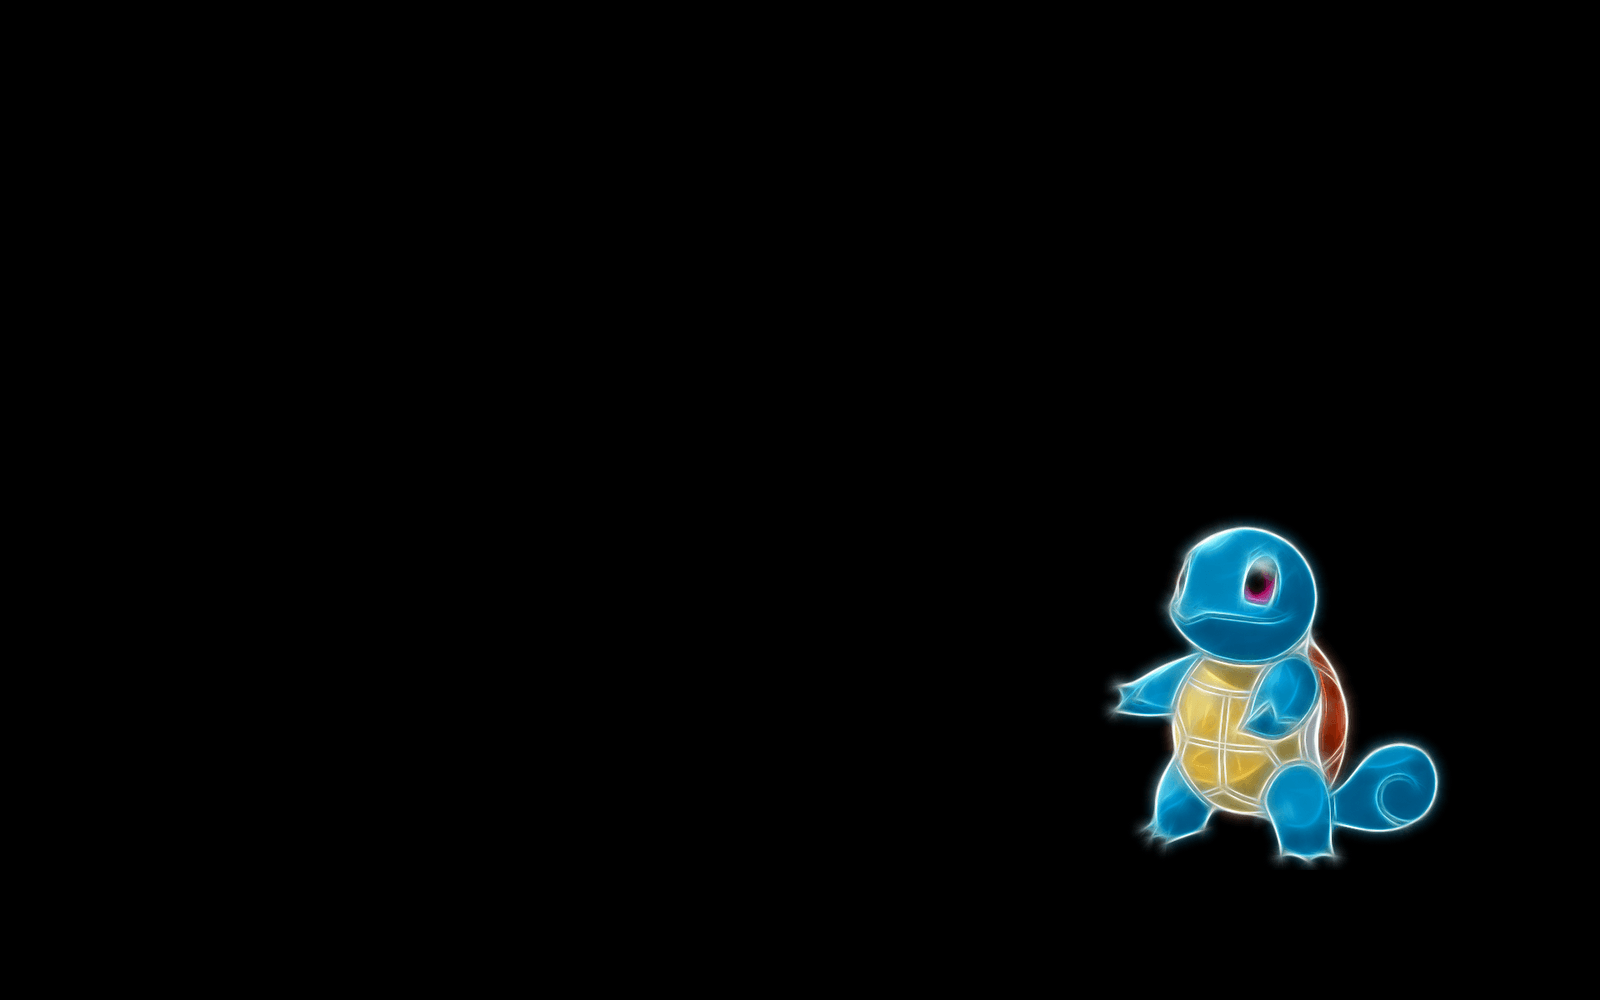 Cool pokemon backgrounds wallpaper cave for Going minimalist